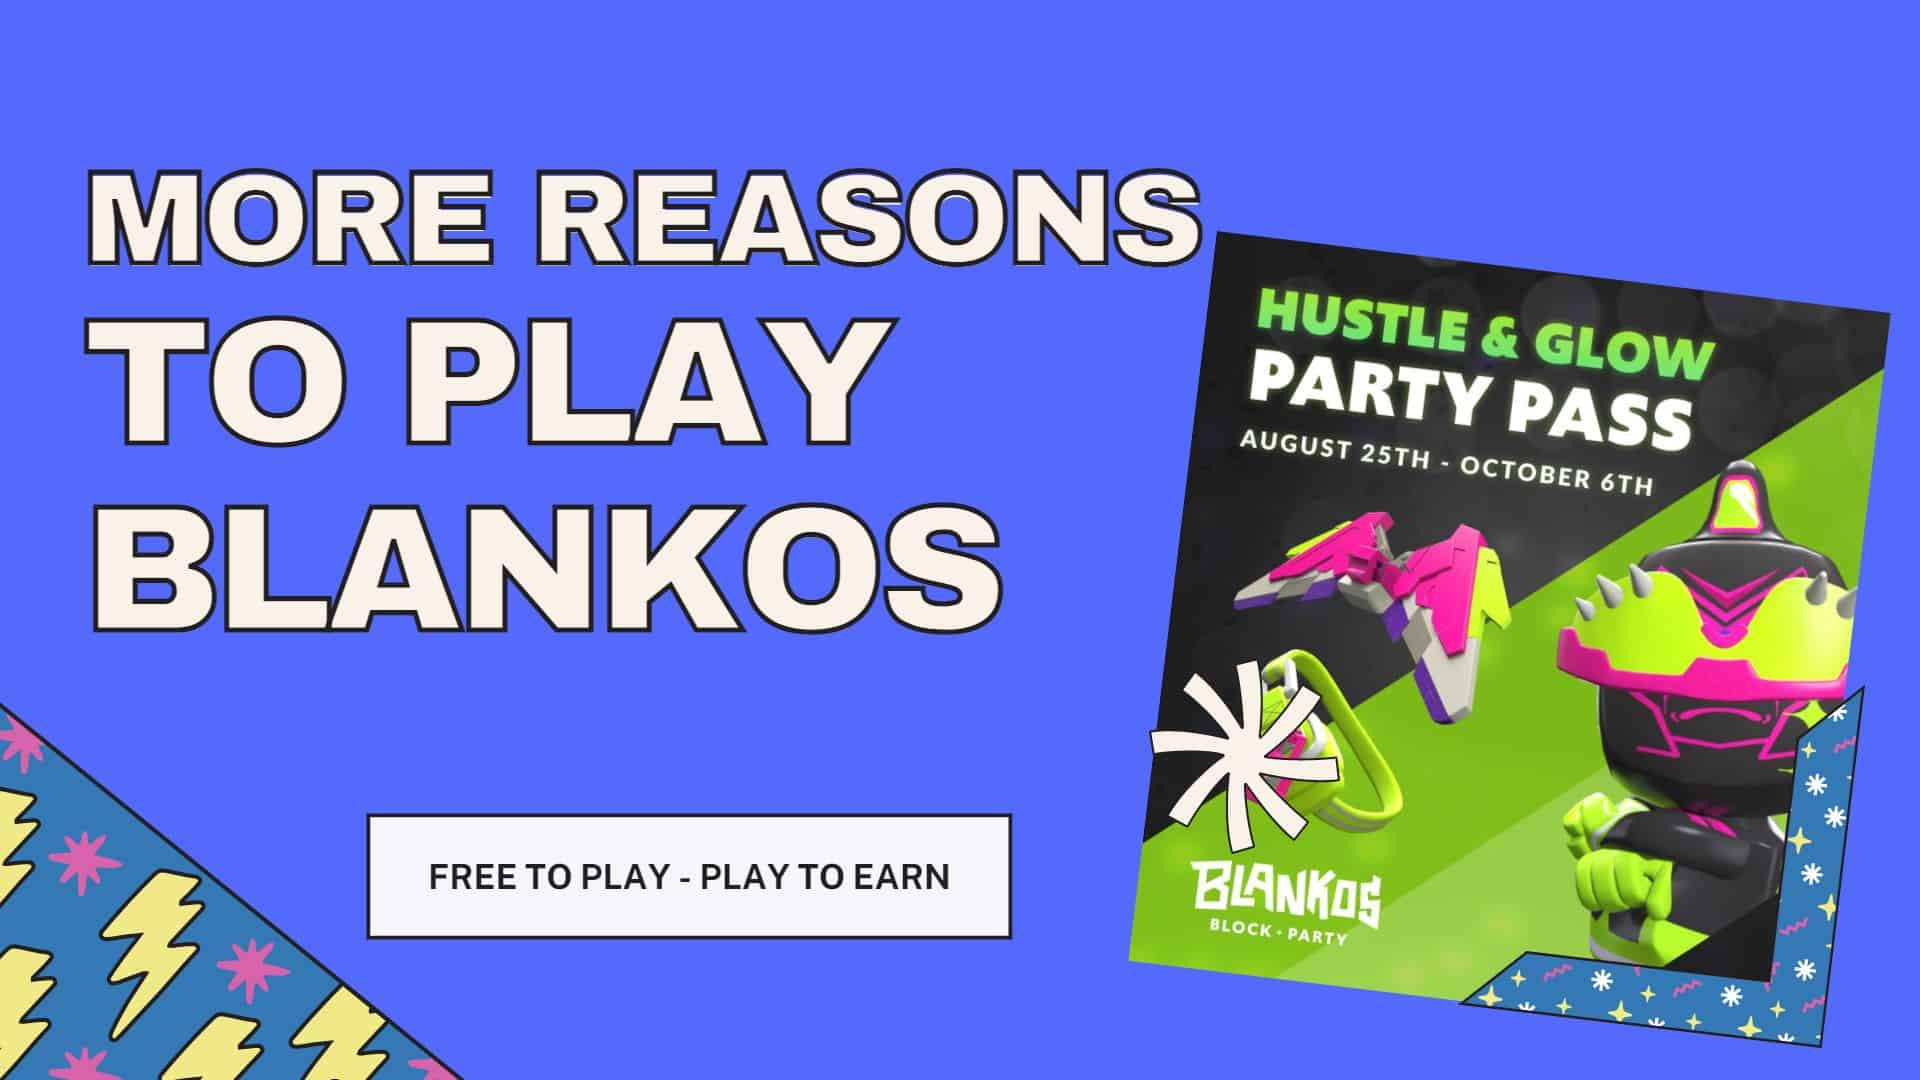 Blankos block party event